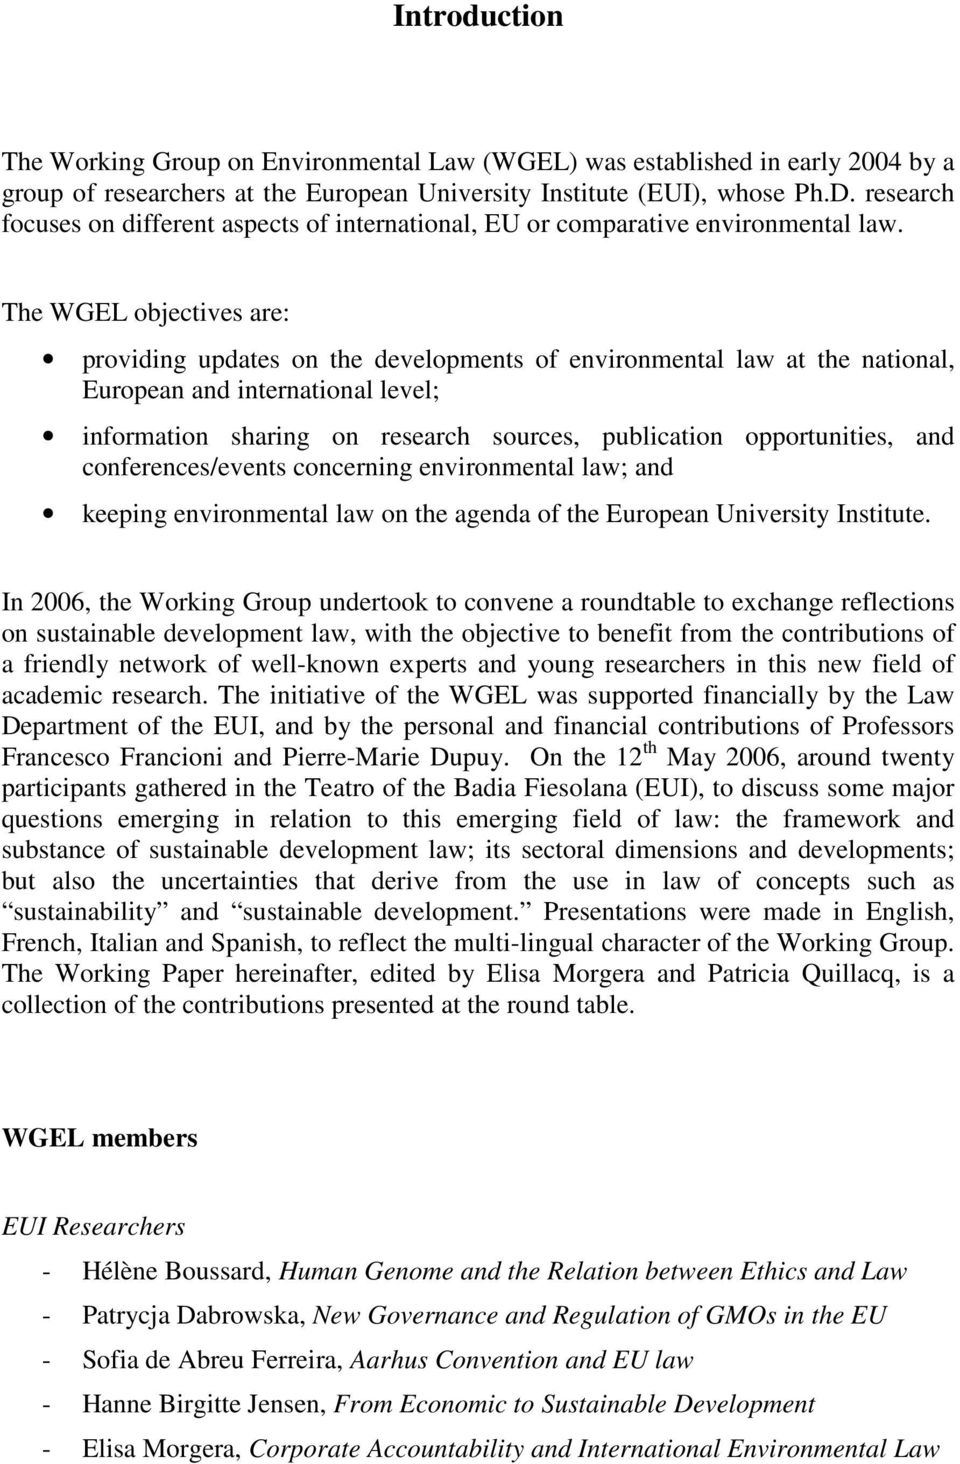 The WGEL objectives are: providing updates on the developments of environmental law at the national, European and international level; information sharing on research sources, publication